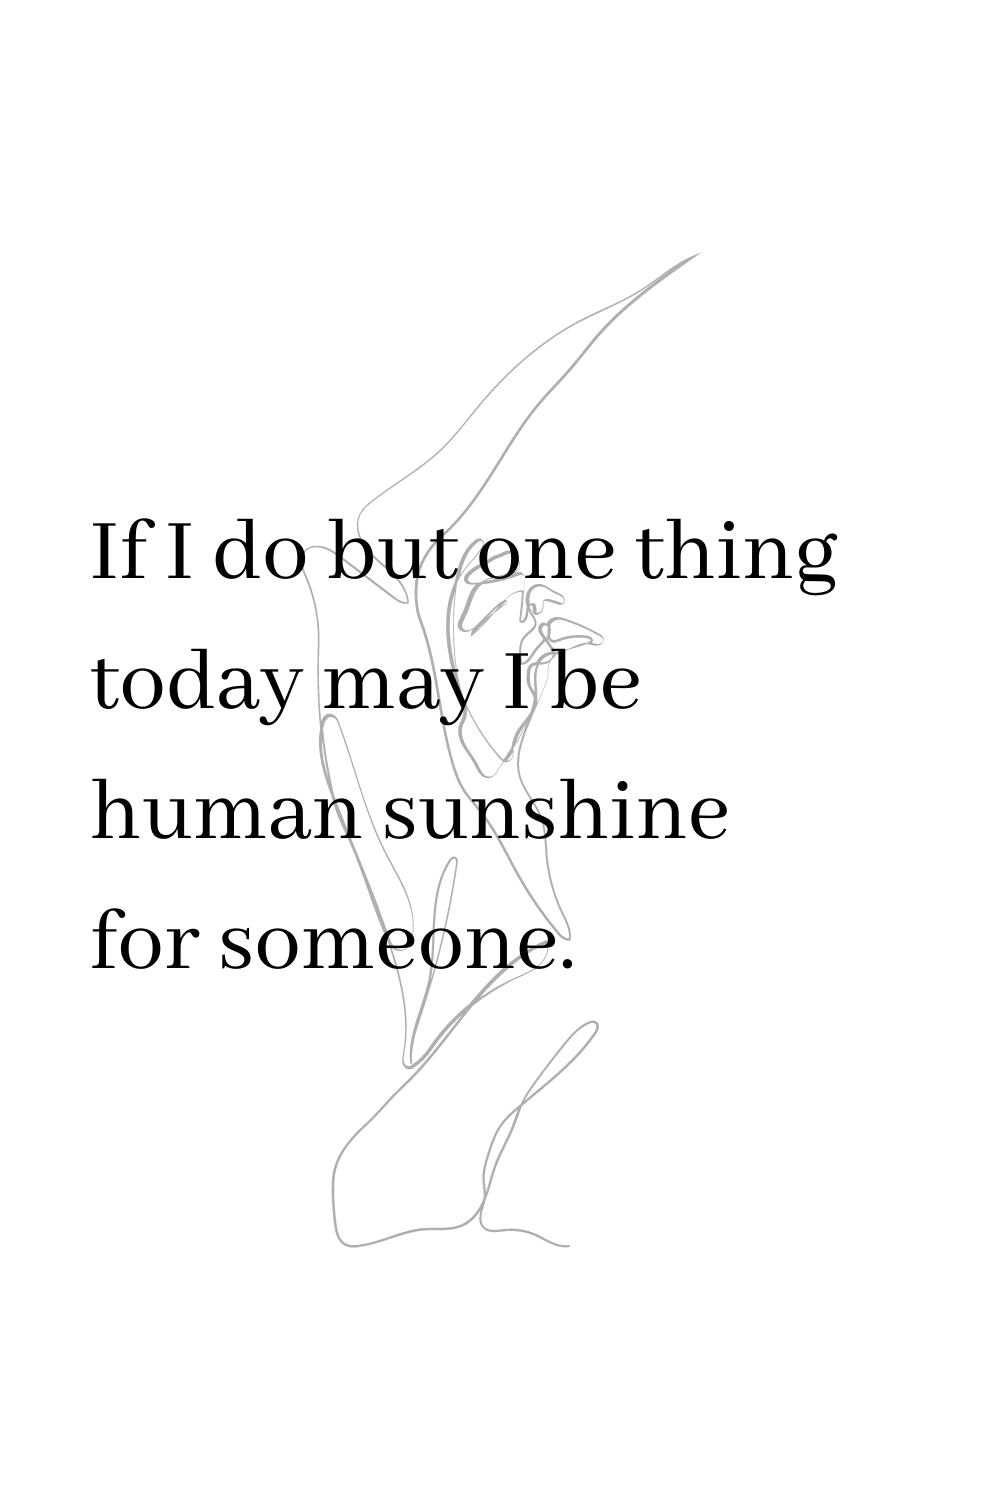 If I do but one thing today may I be human sunshine for someone.